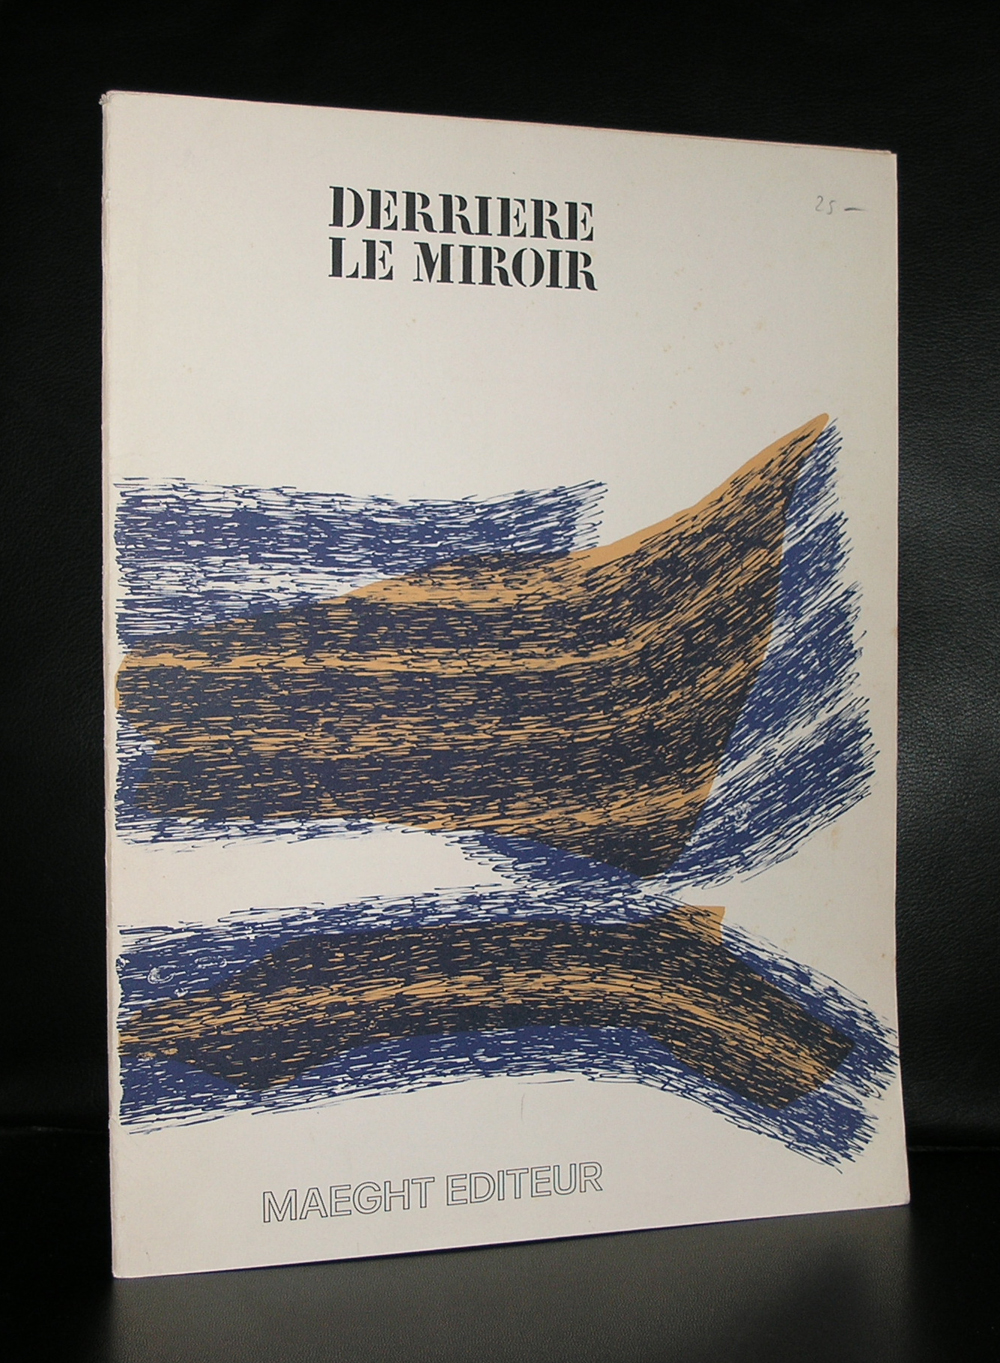 maeght edition derriere le miroir ftn books